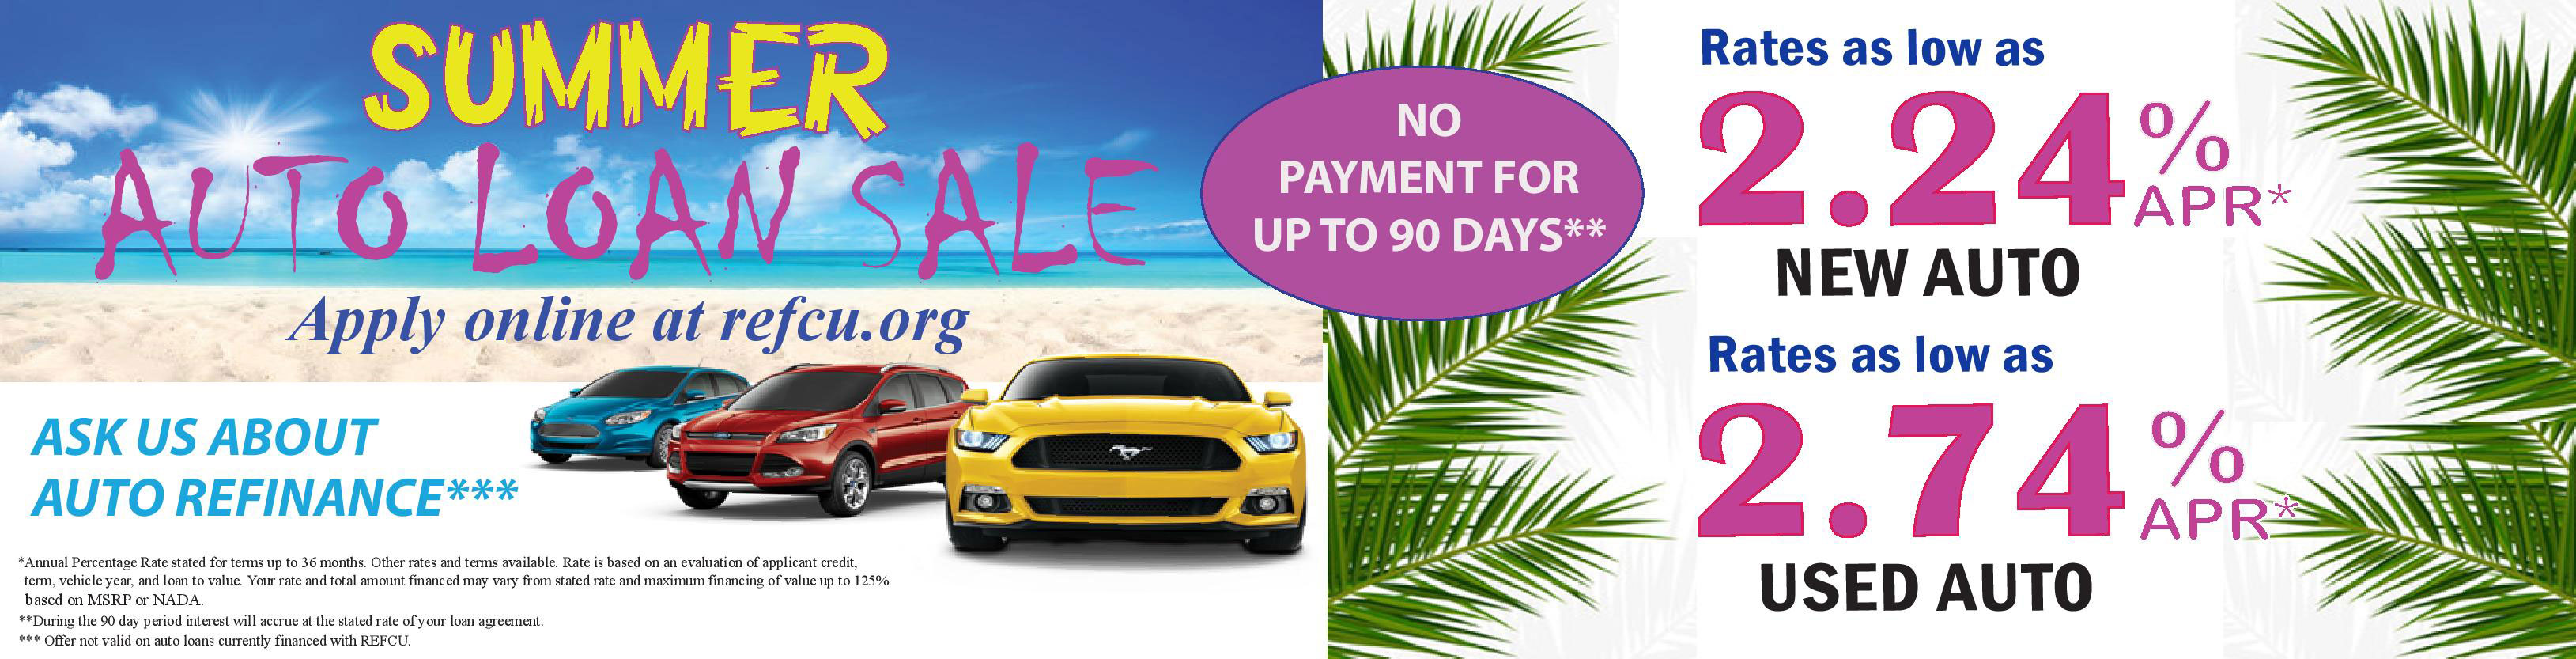 Summer auto loan sale - rates as low as 2.24%